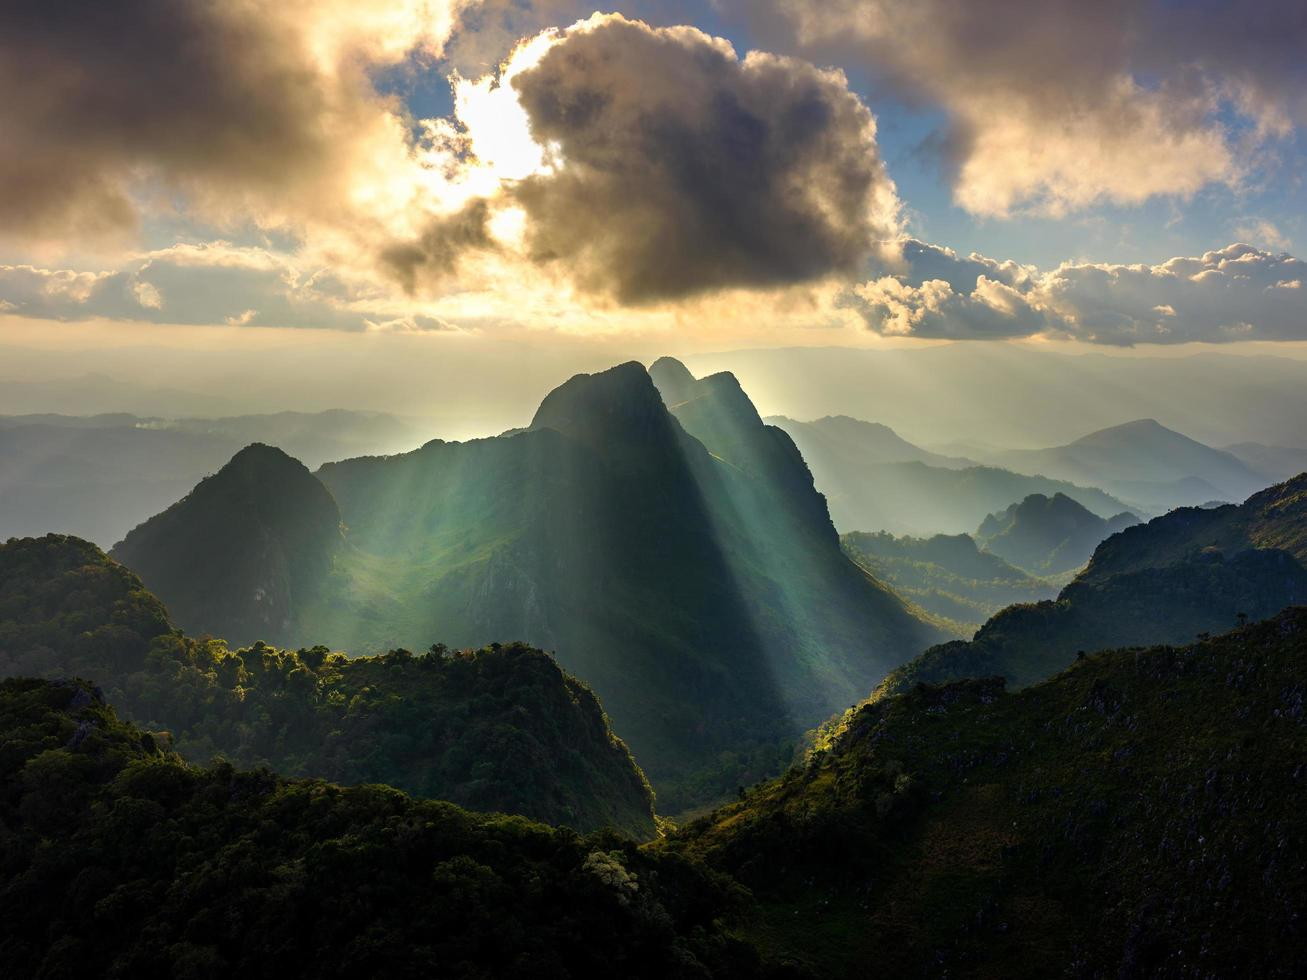 Sun shining through clouds and mountains  photo